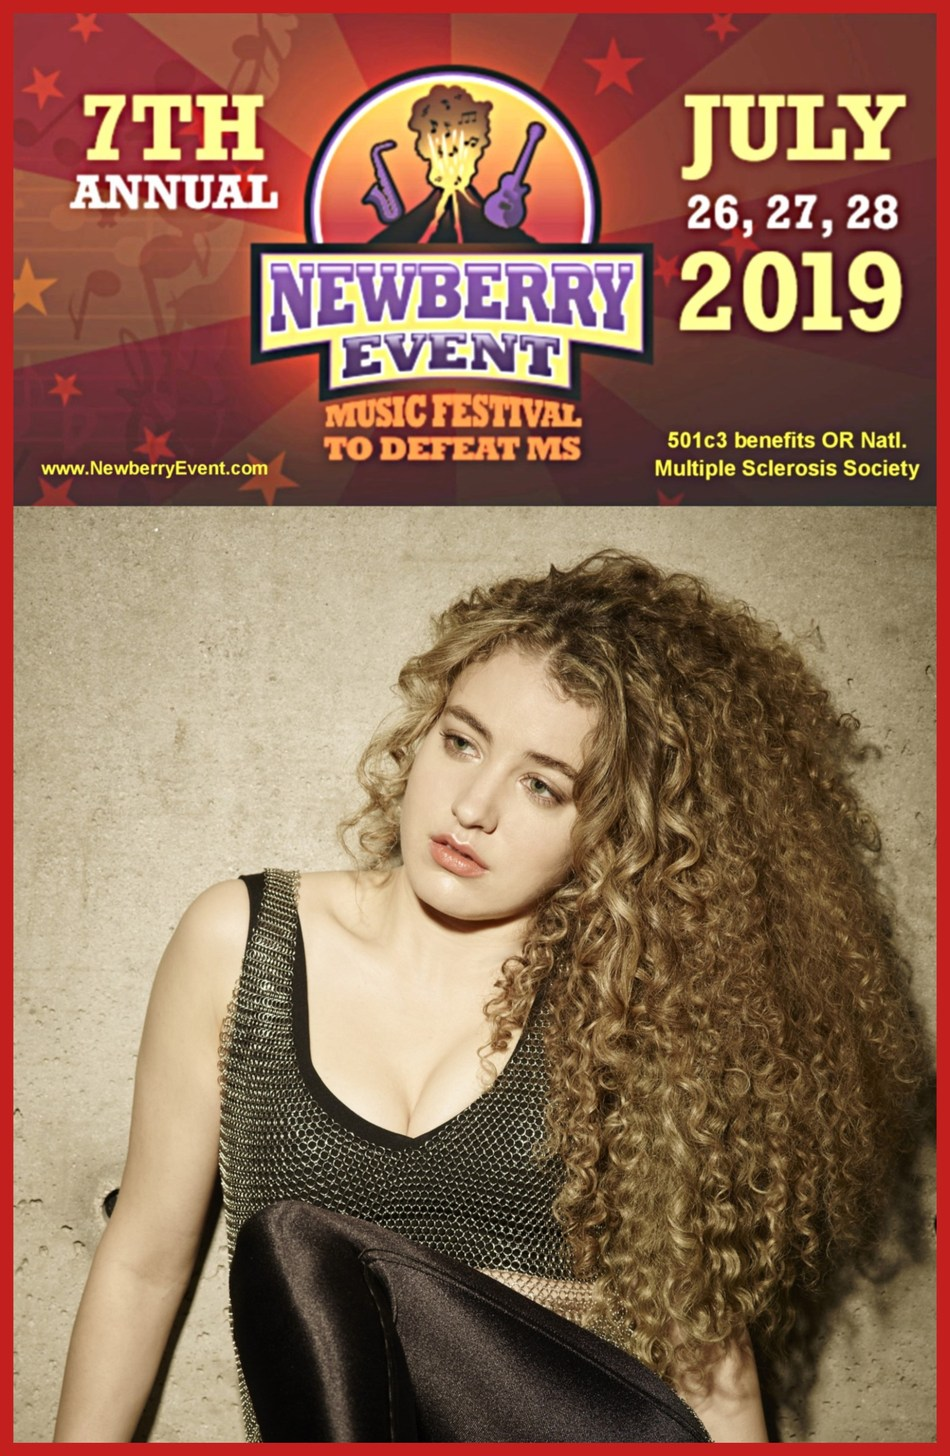 7th Newberry Event Charity Music Festival to Defeat Multiple Sclerosis Central Oregon, JULY 26-28, 2019 www.newberryevent.com